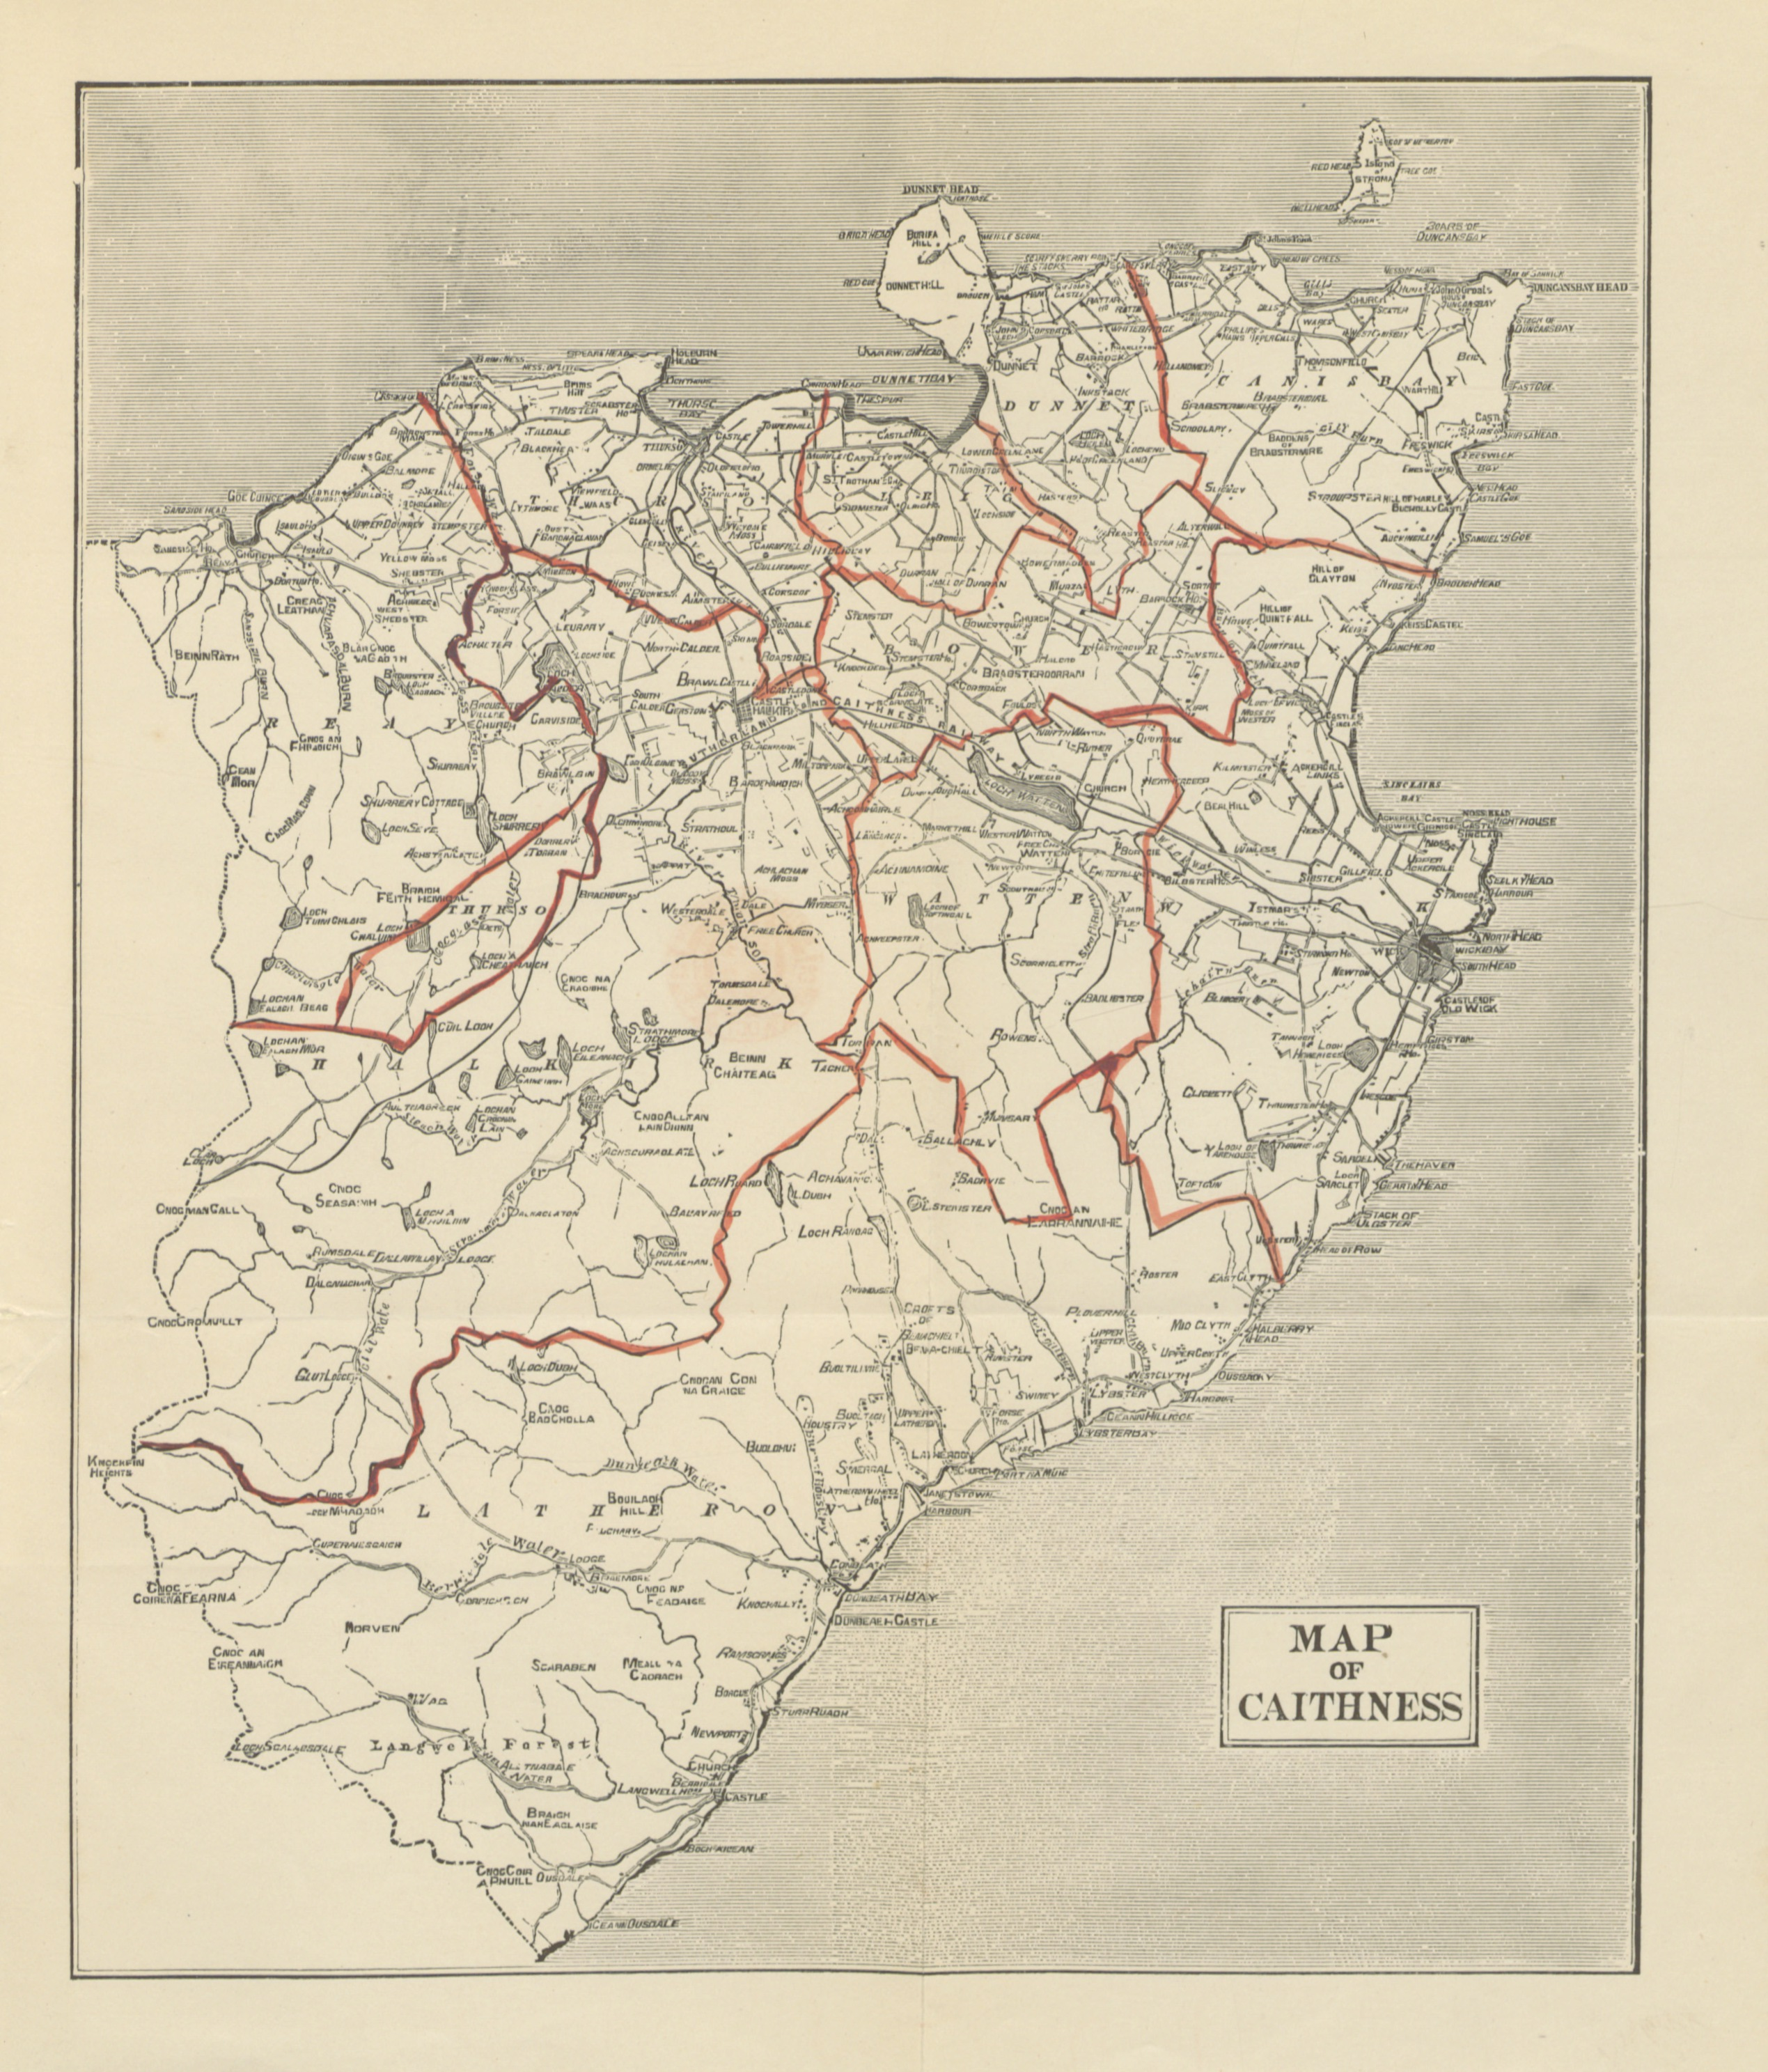 Map of Caithness